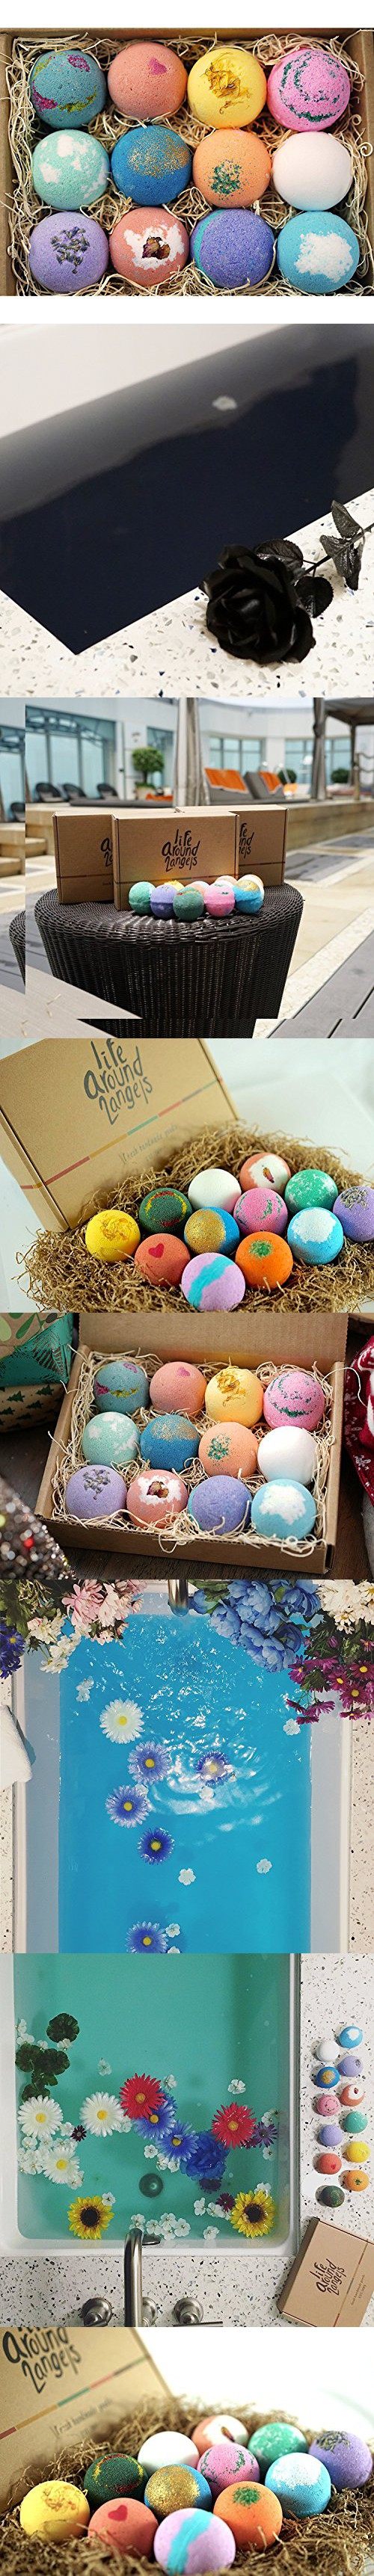 Lifearound2angels bath bombs gift set 12 usa made fizzies shea lifearound2angels bath bombs gift set 12 usa made fizzies shea coco butter dry skin negle Gallery